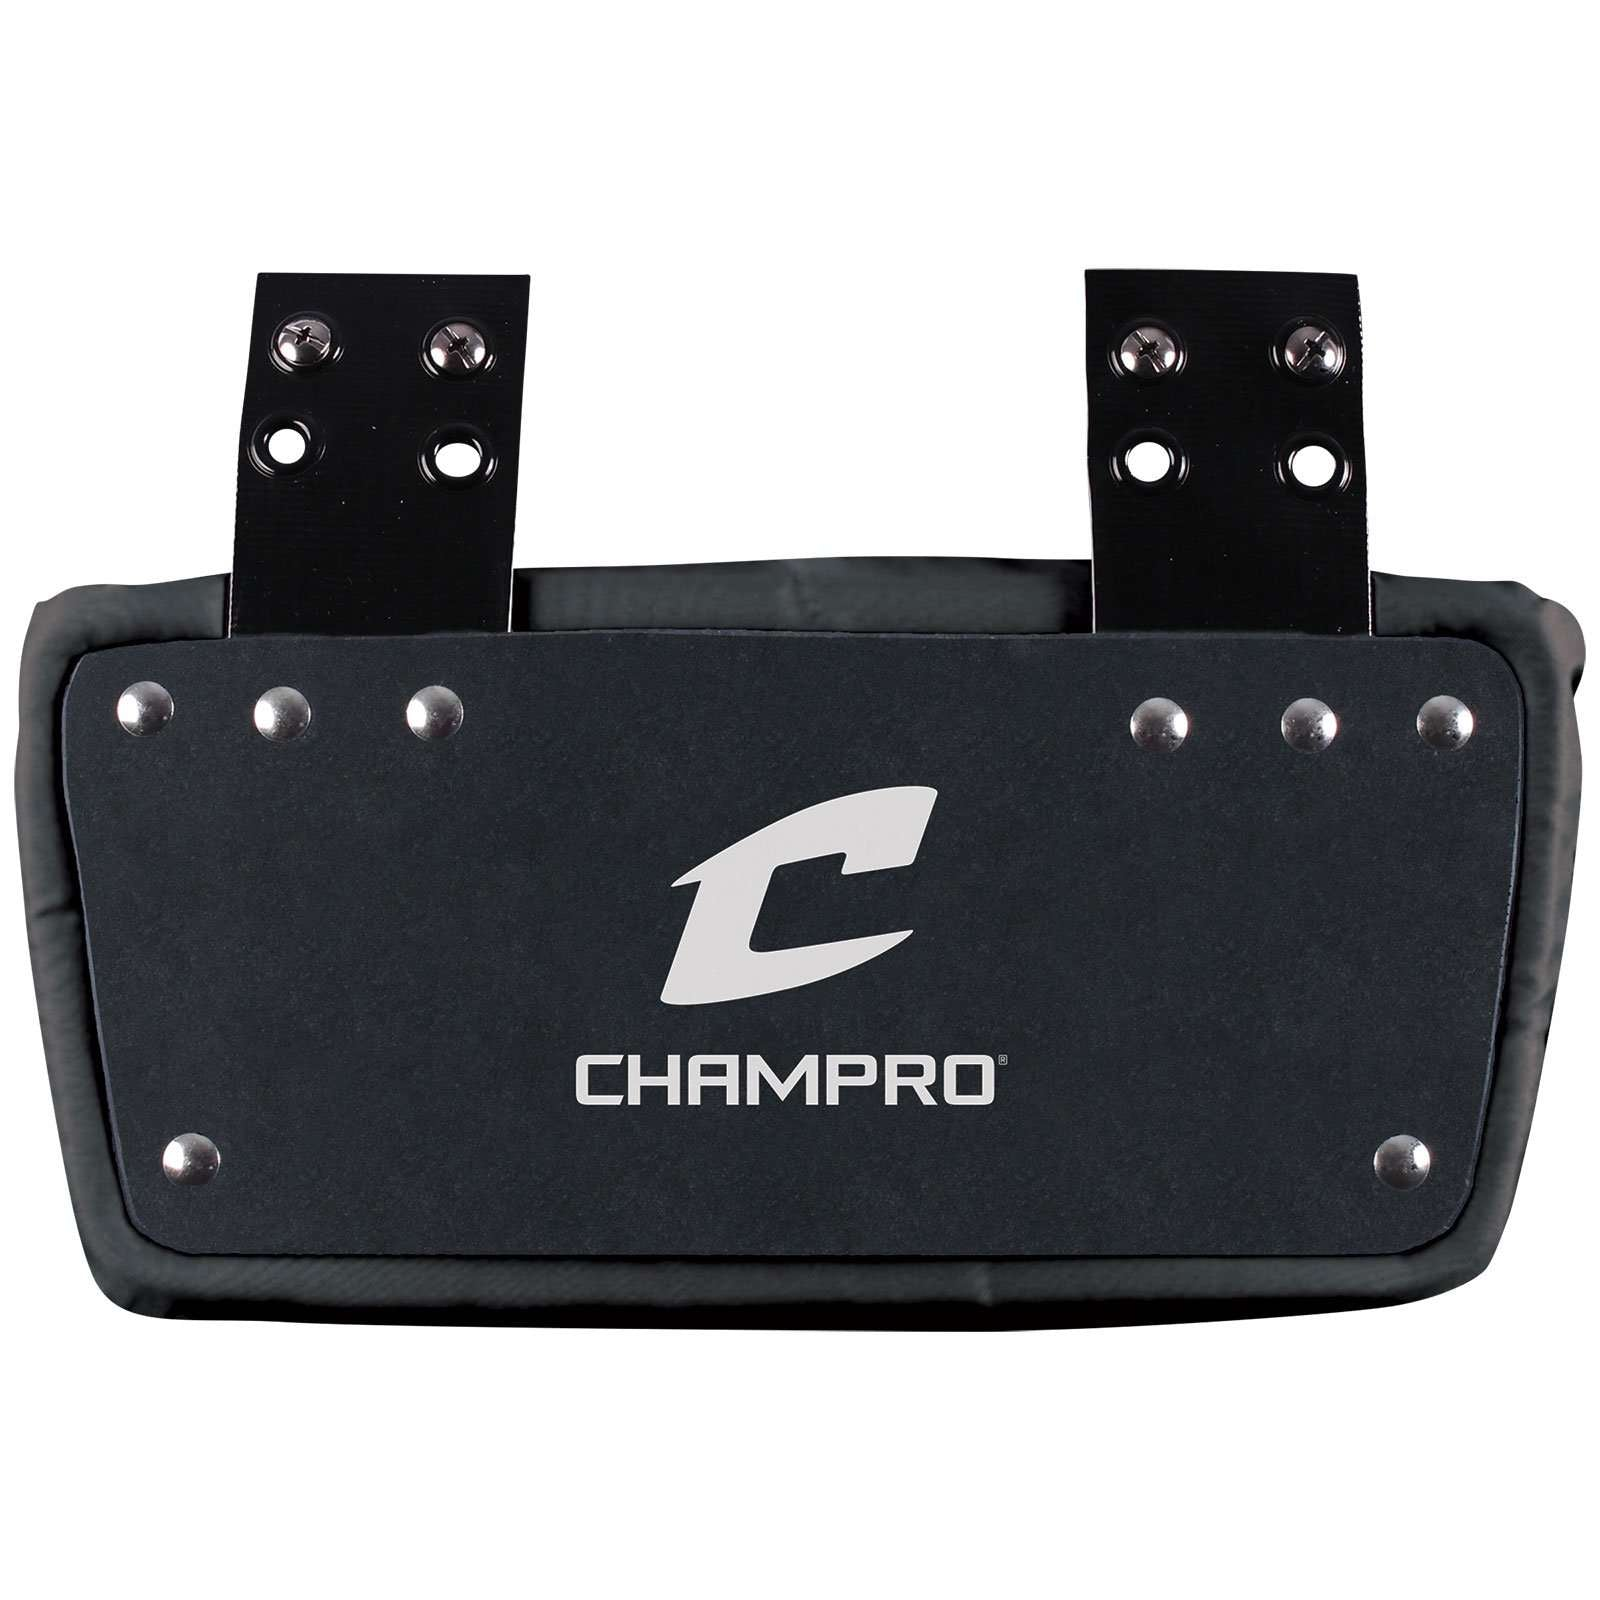 Champro Back Plate - League Outfitters